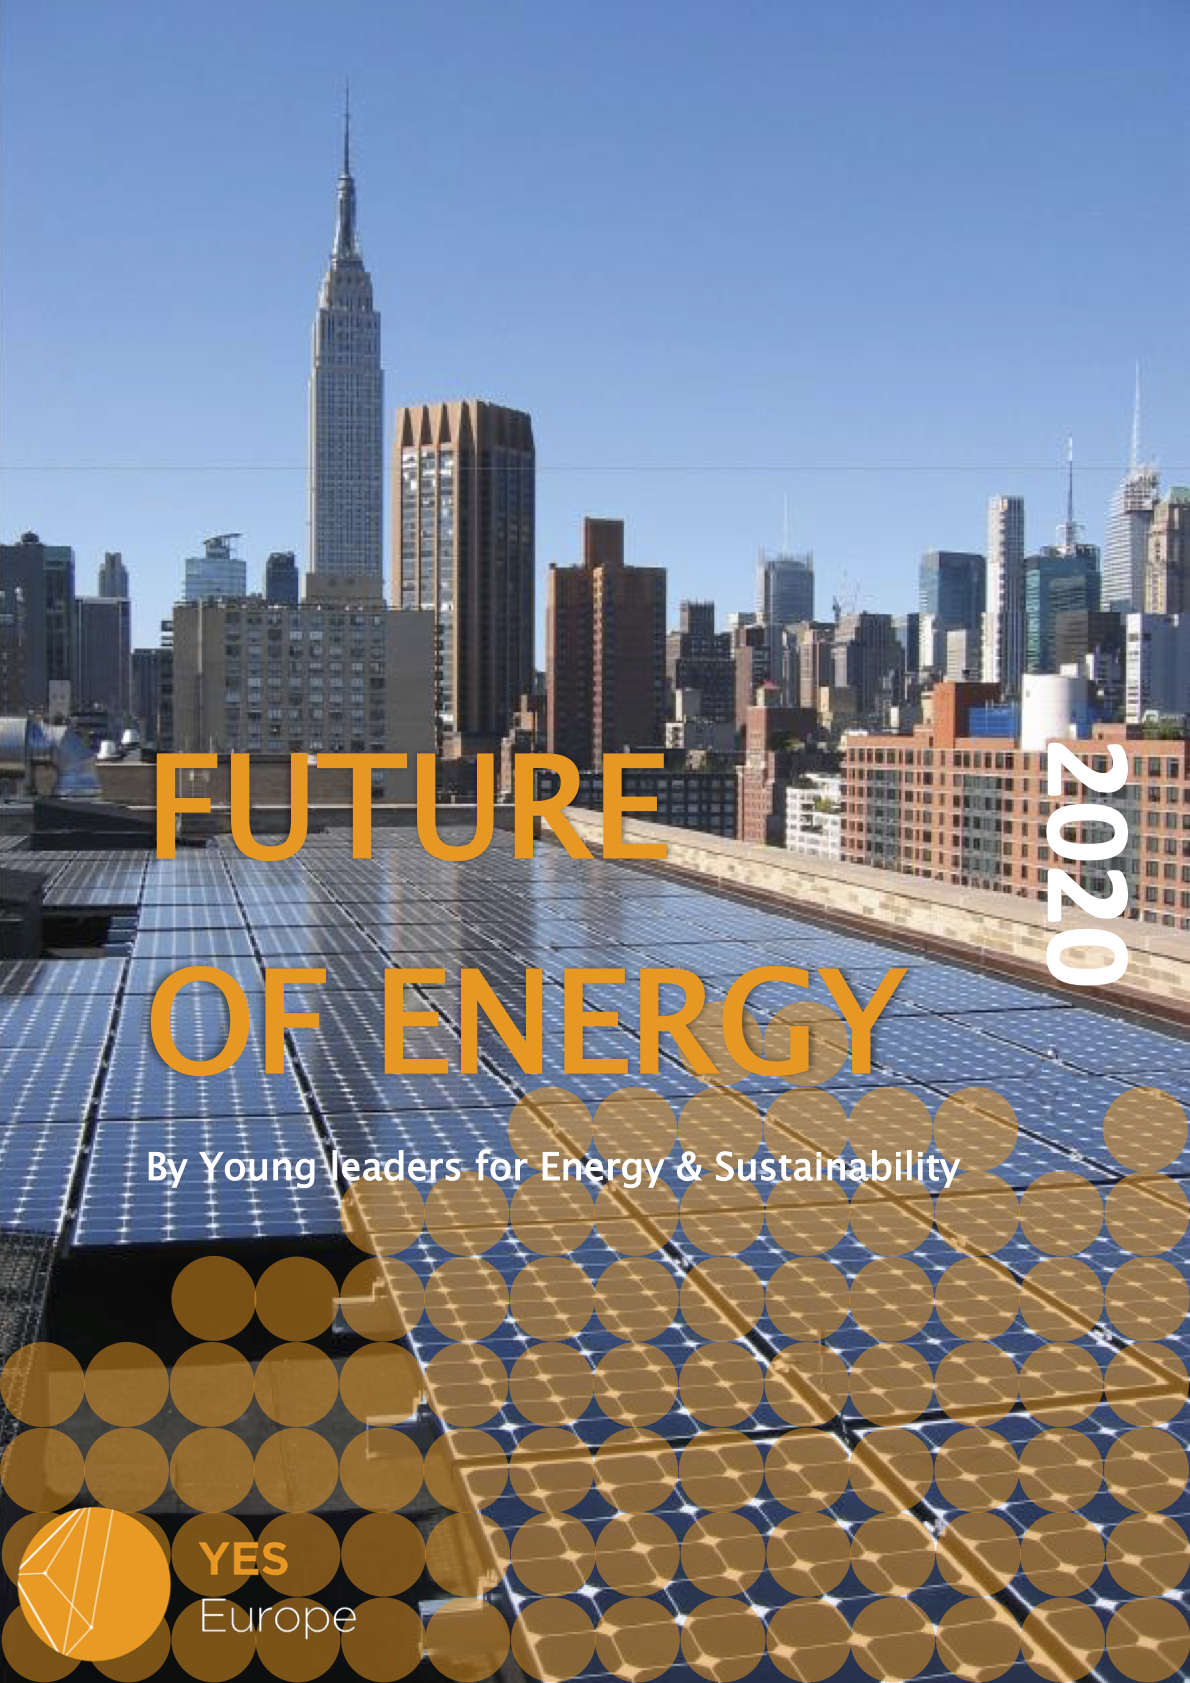 The Future of Energy Report 2020